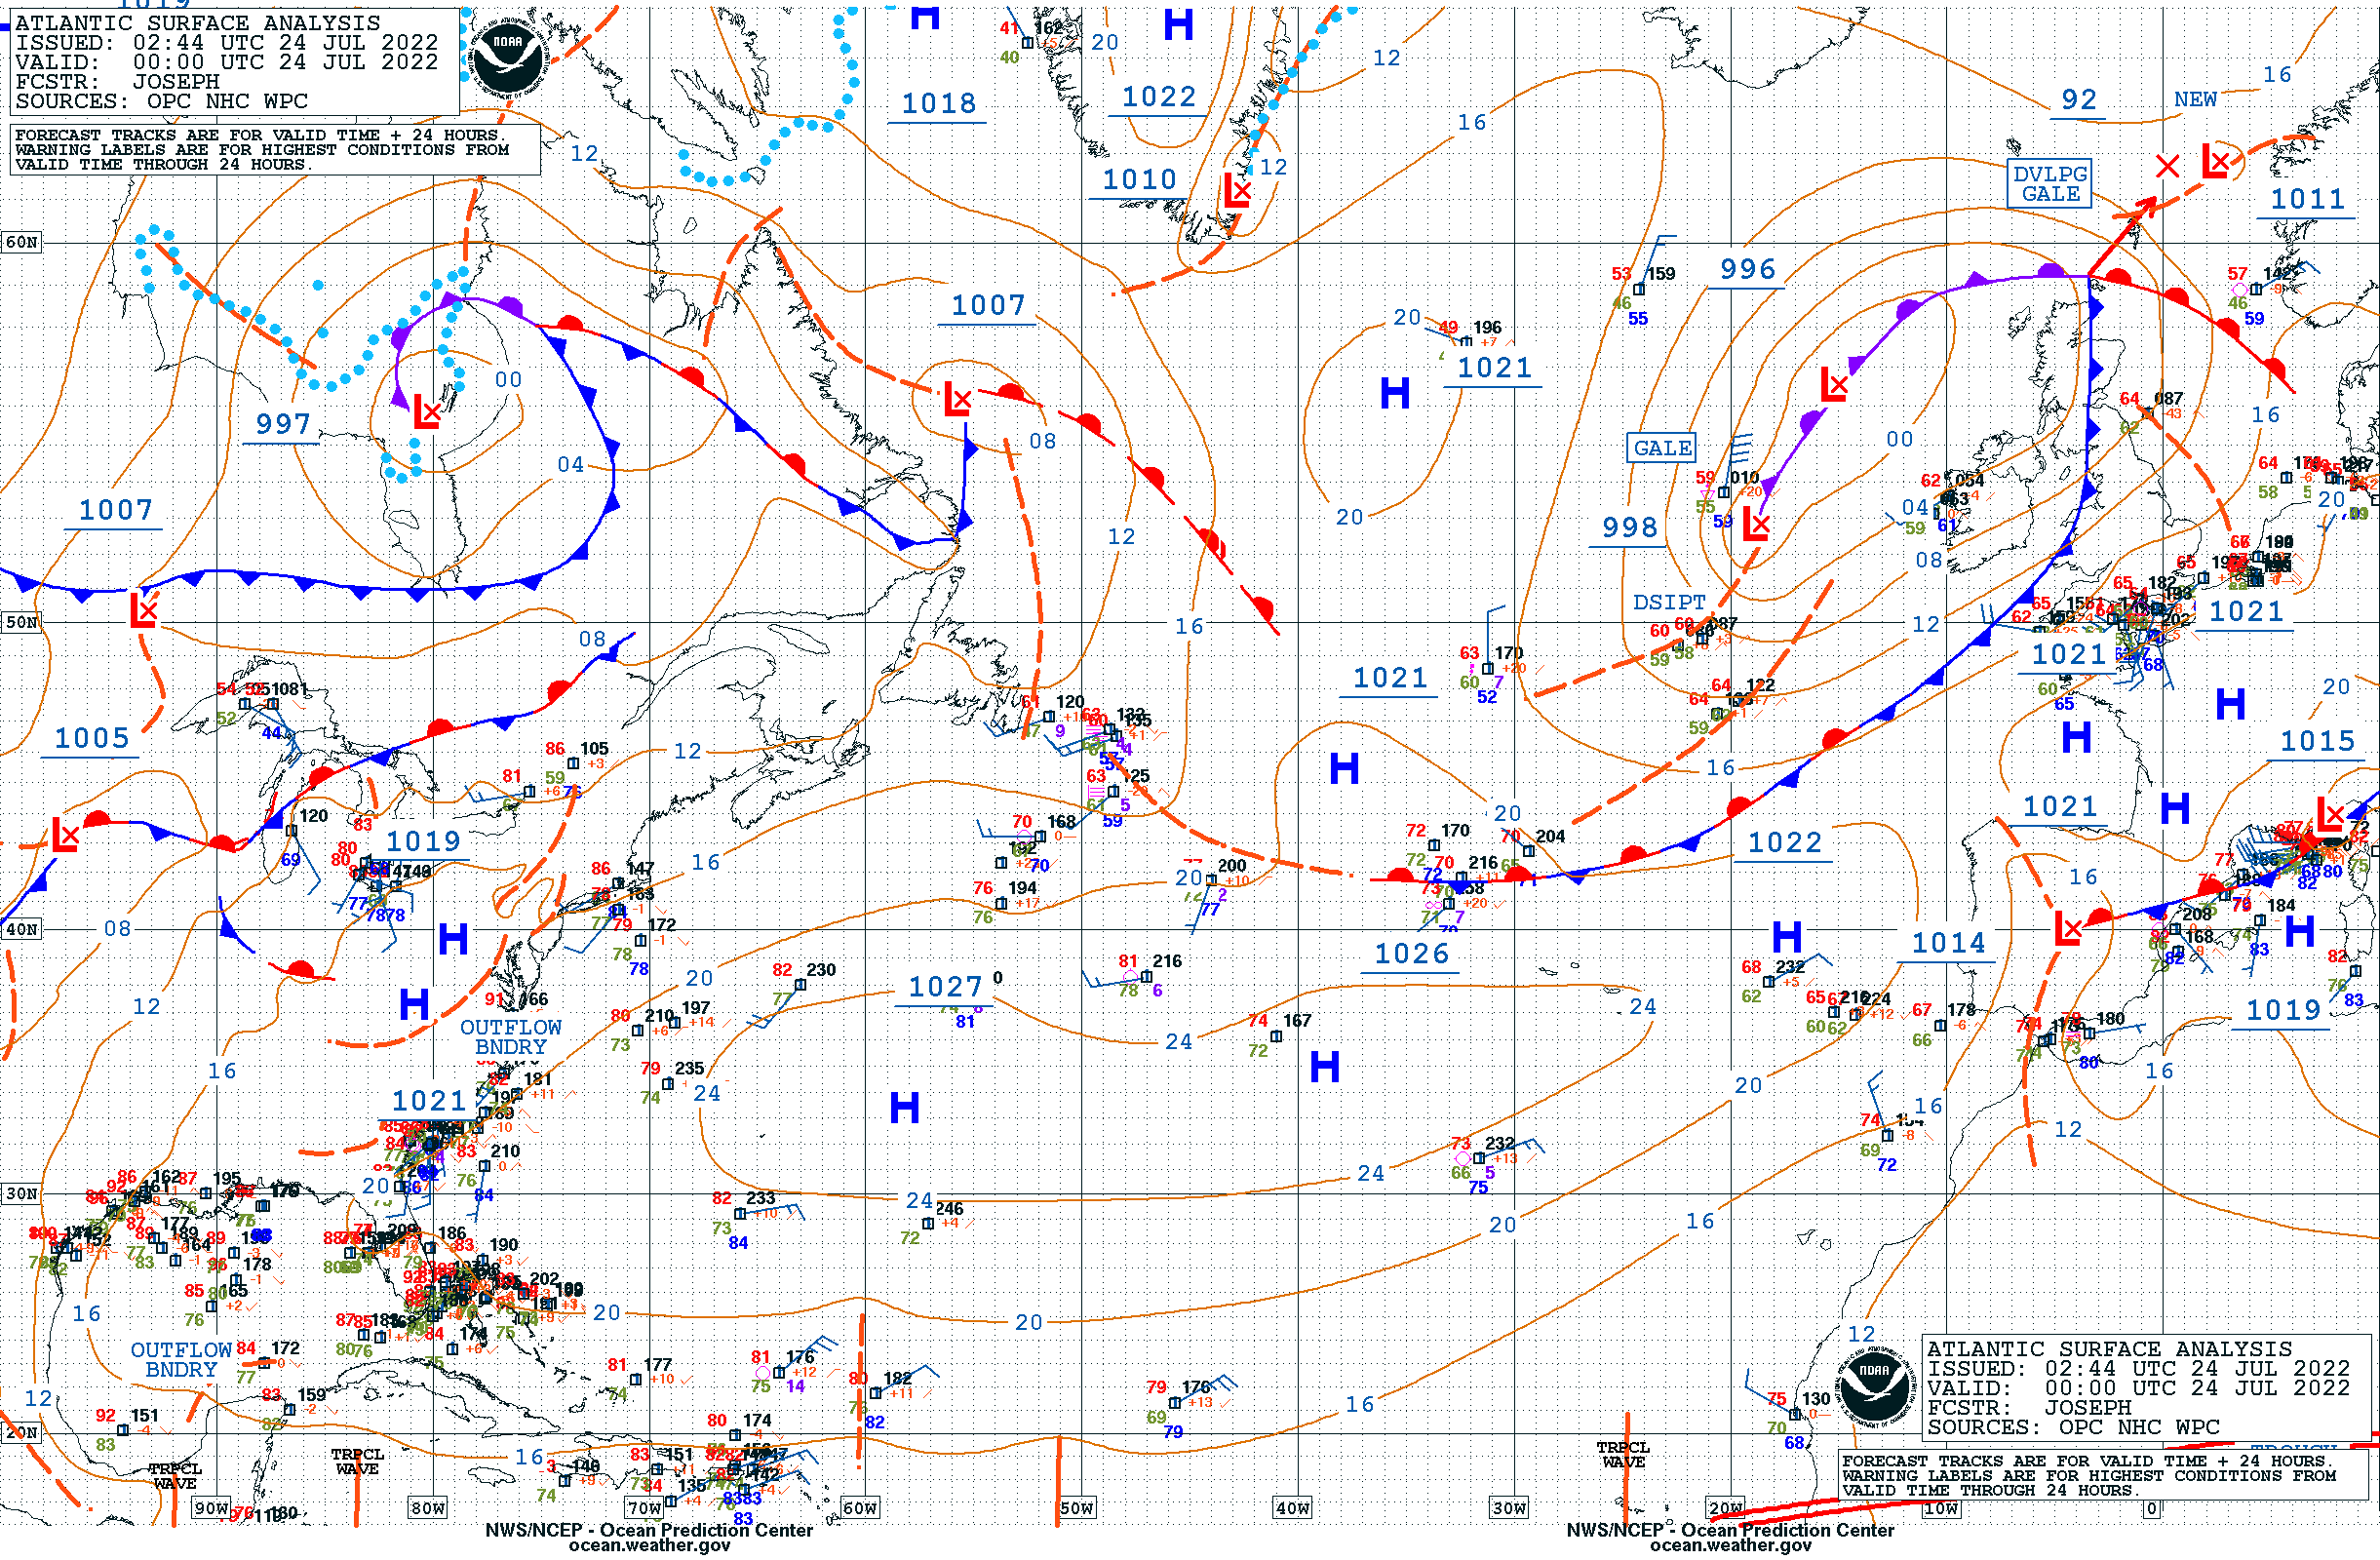 North Atlantic Surface Analysis